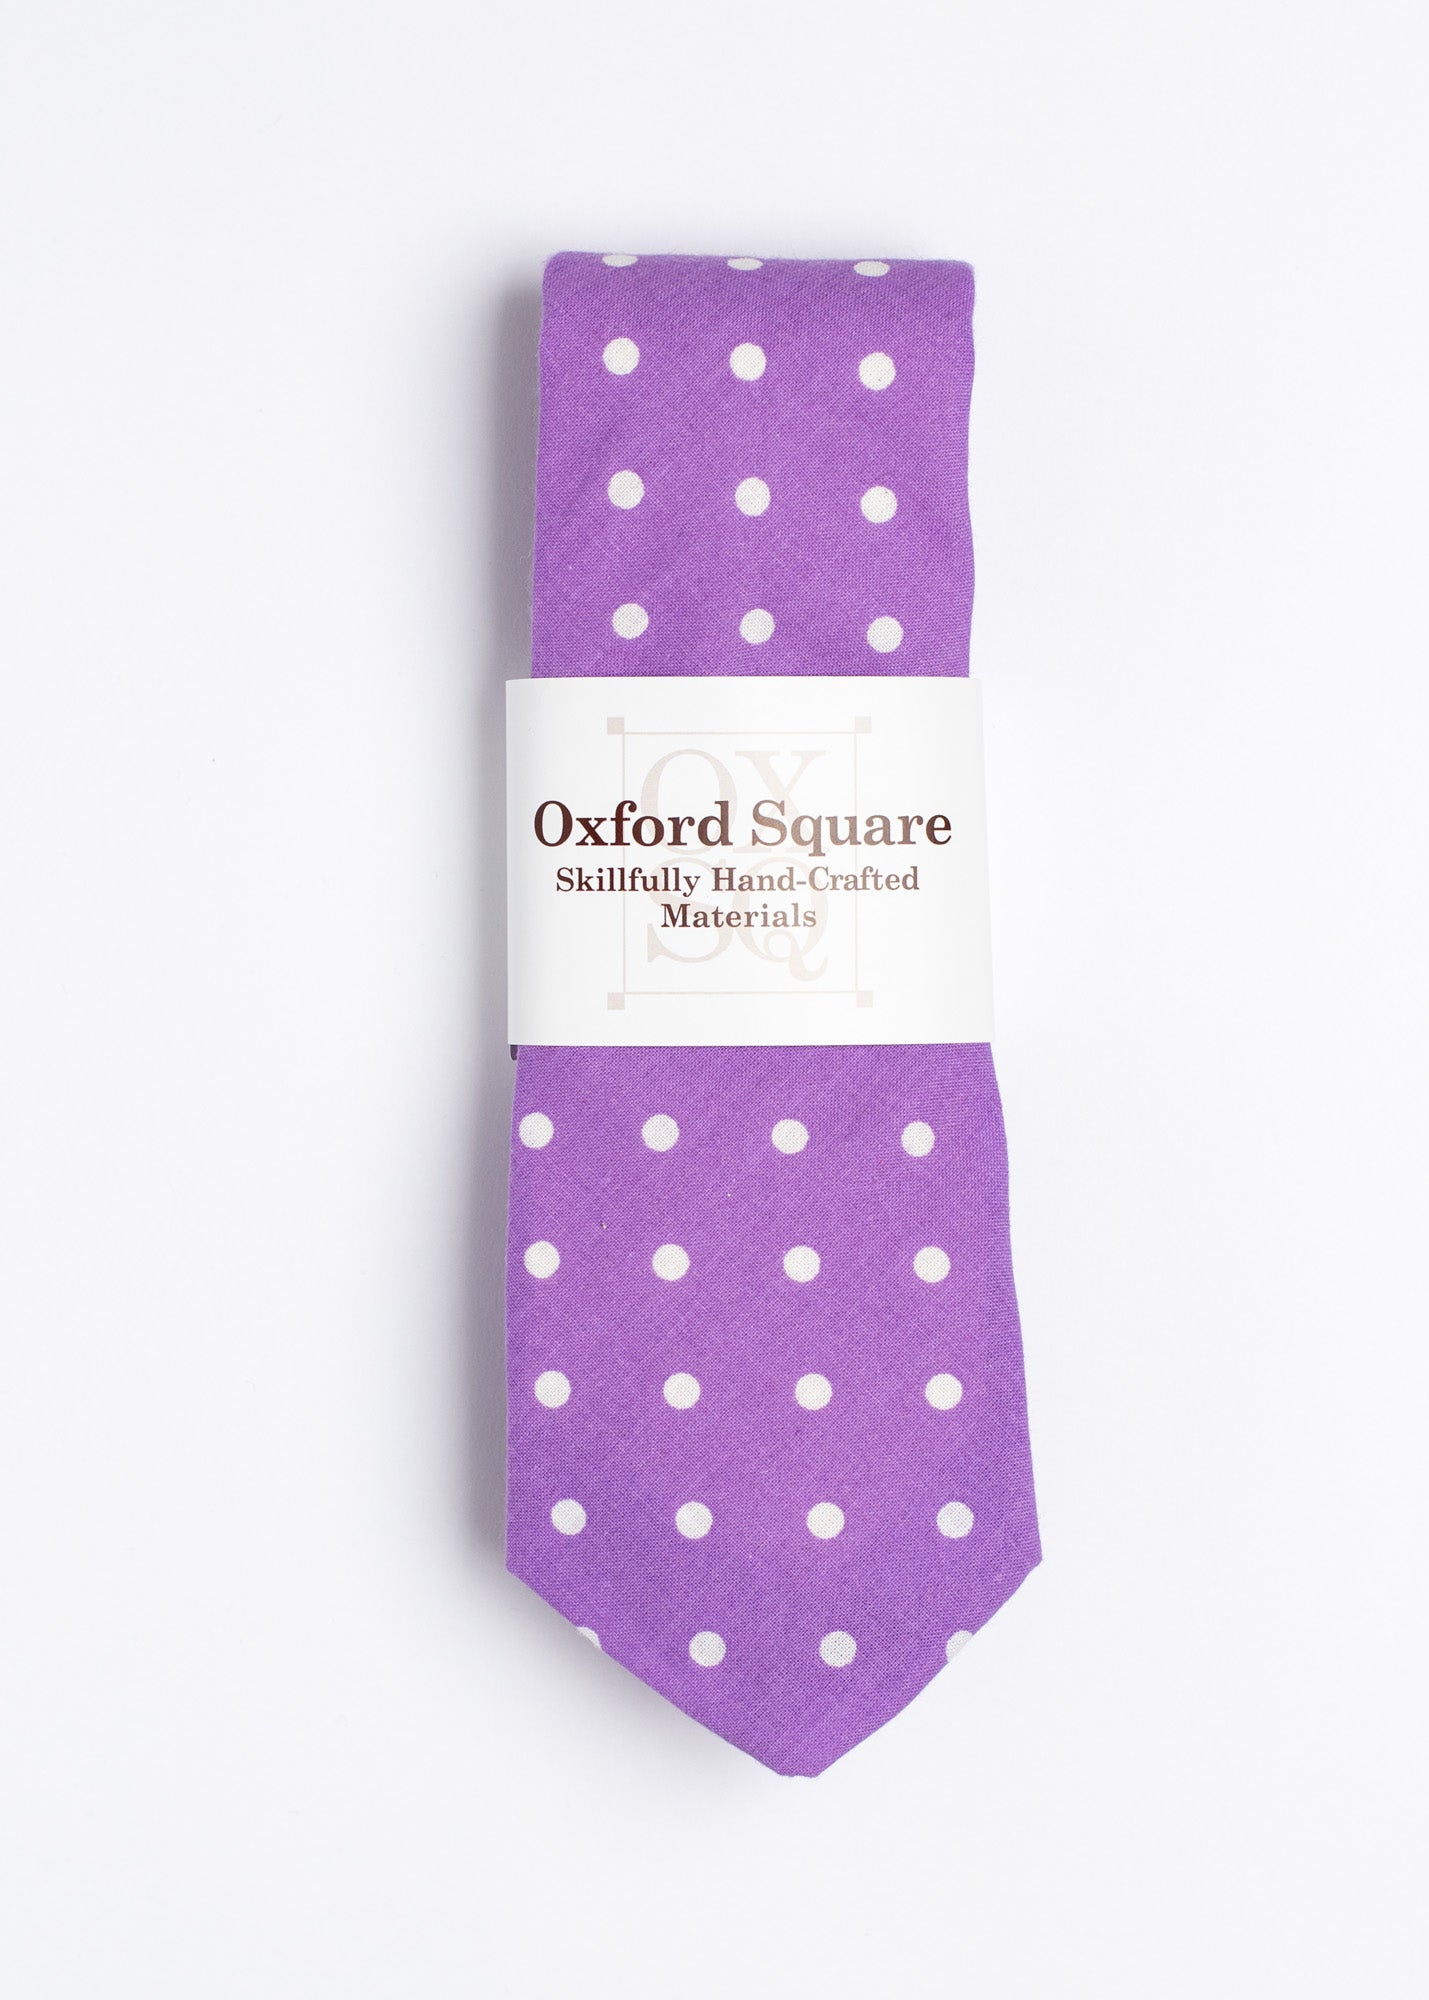 purple and white polka dot pattern tie - Oxford Square